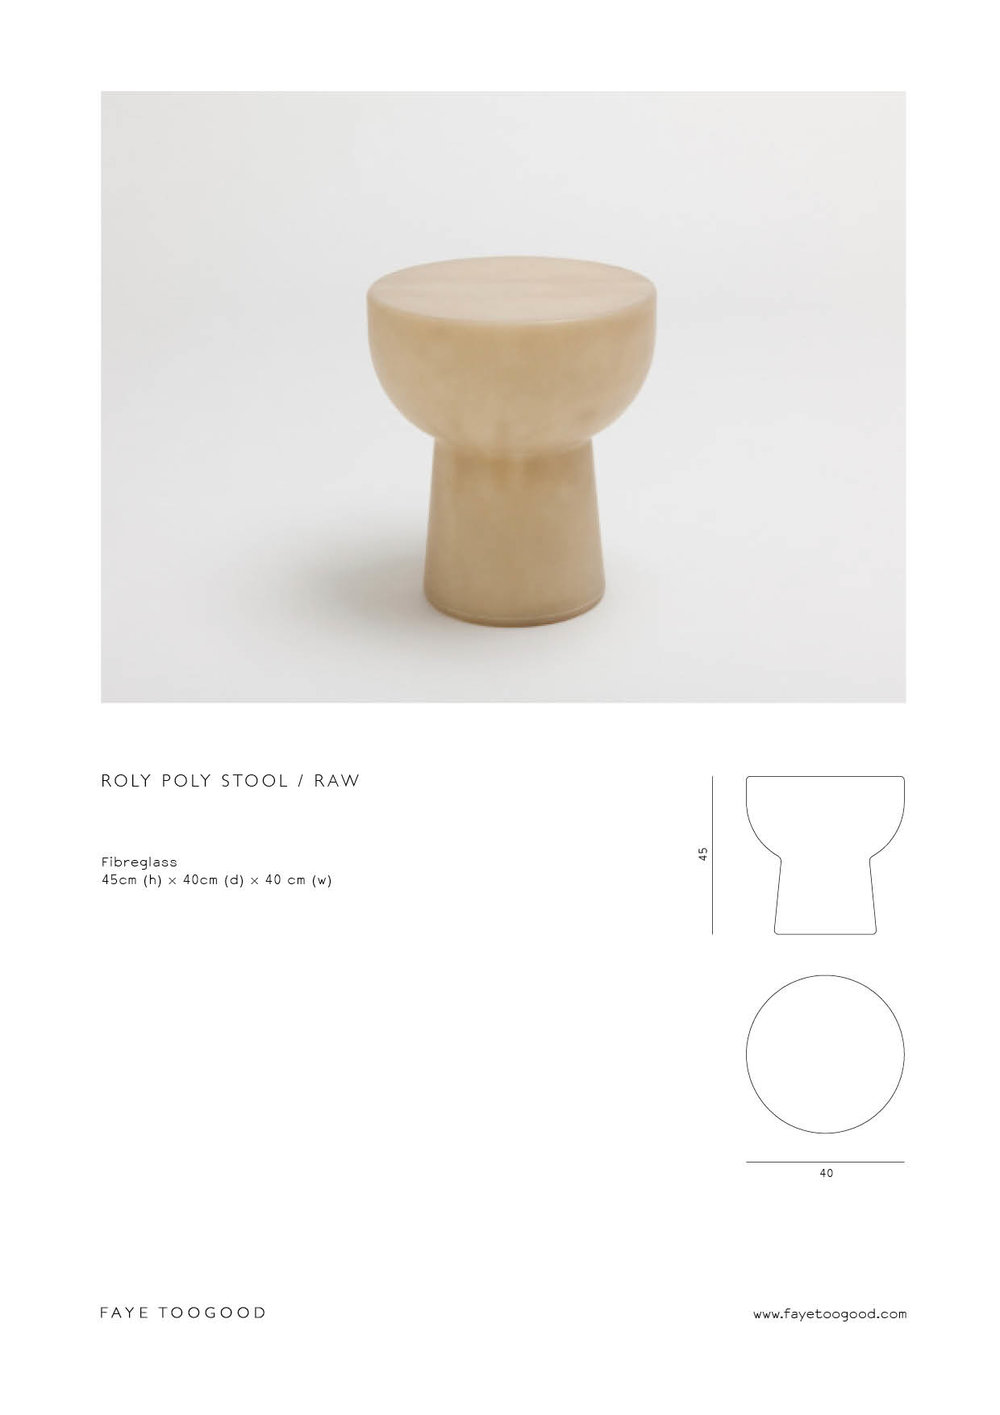 roly poly stool raw .jpg